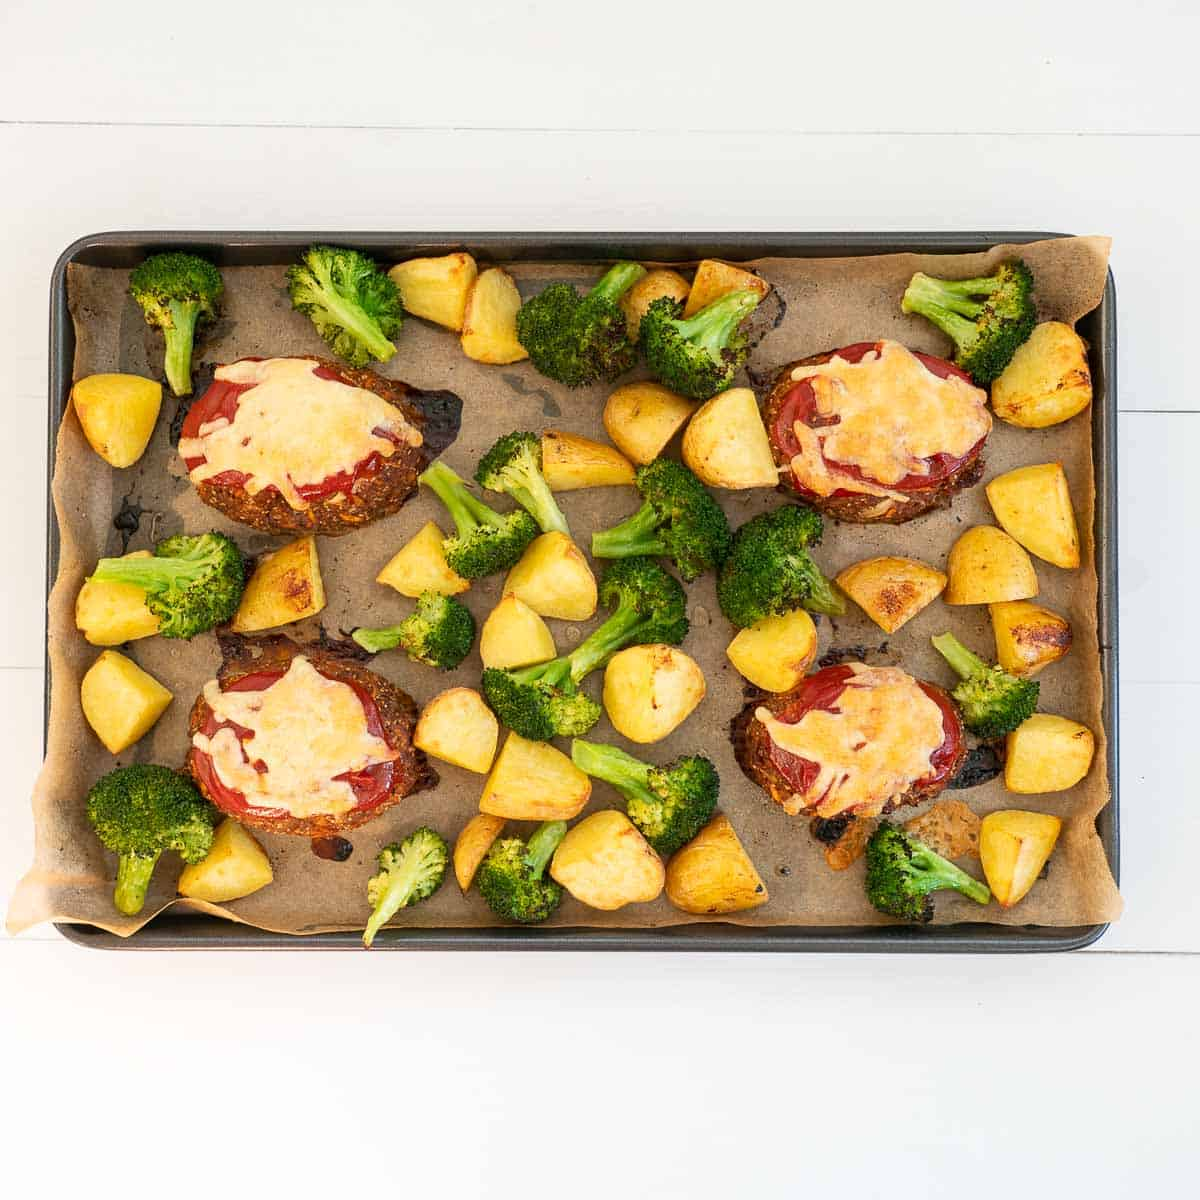 4 mini meatloaves toped with melted cheeseon an oven tray roast potatoes and broccoli